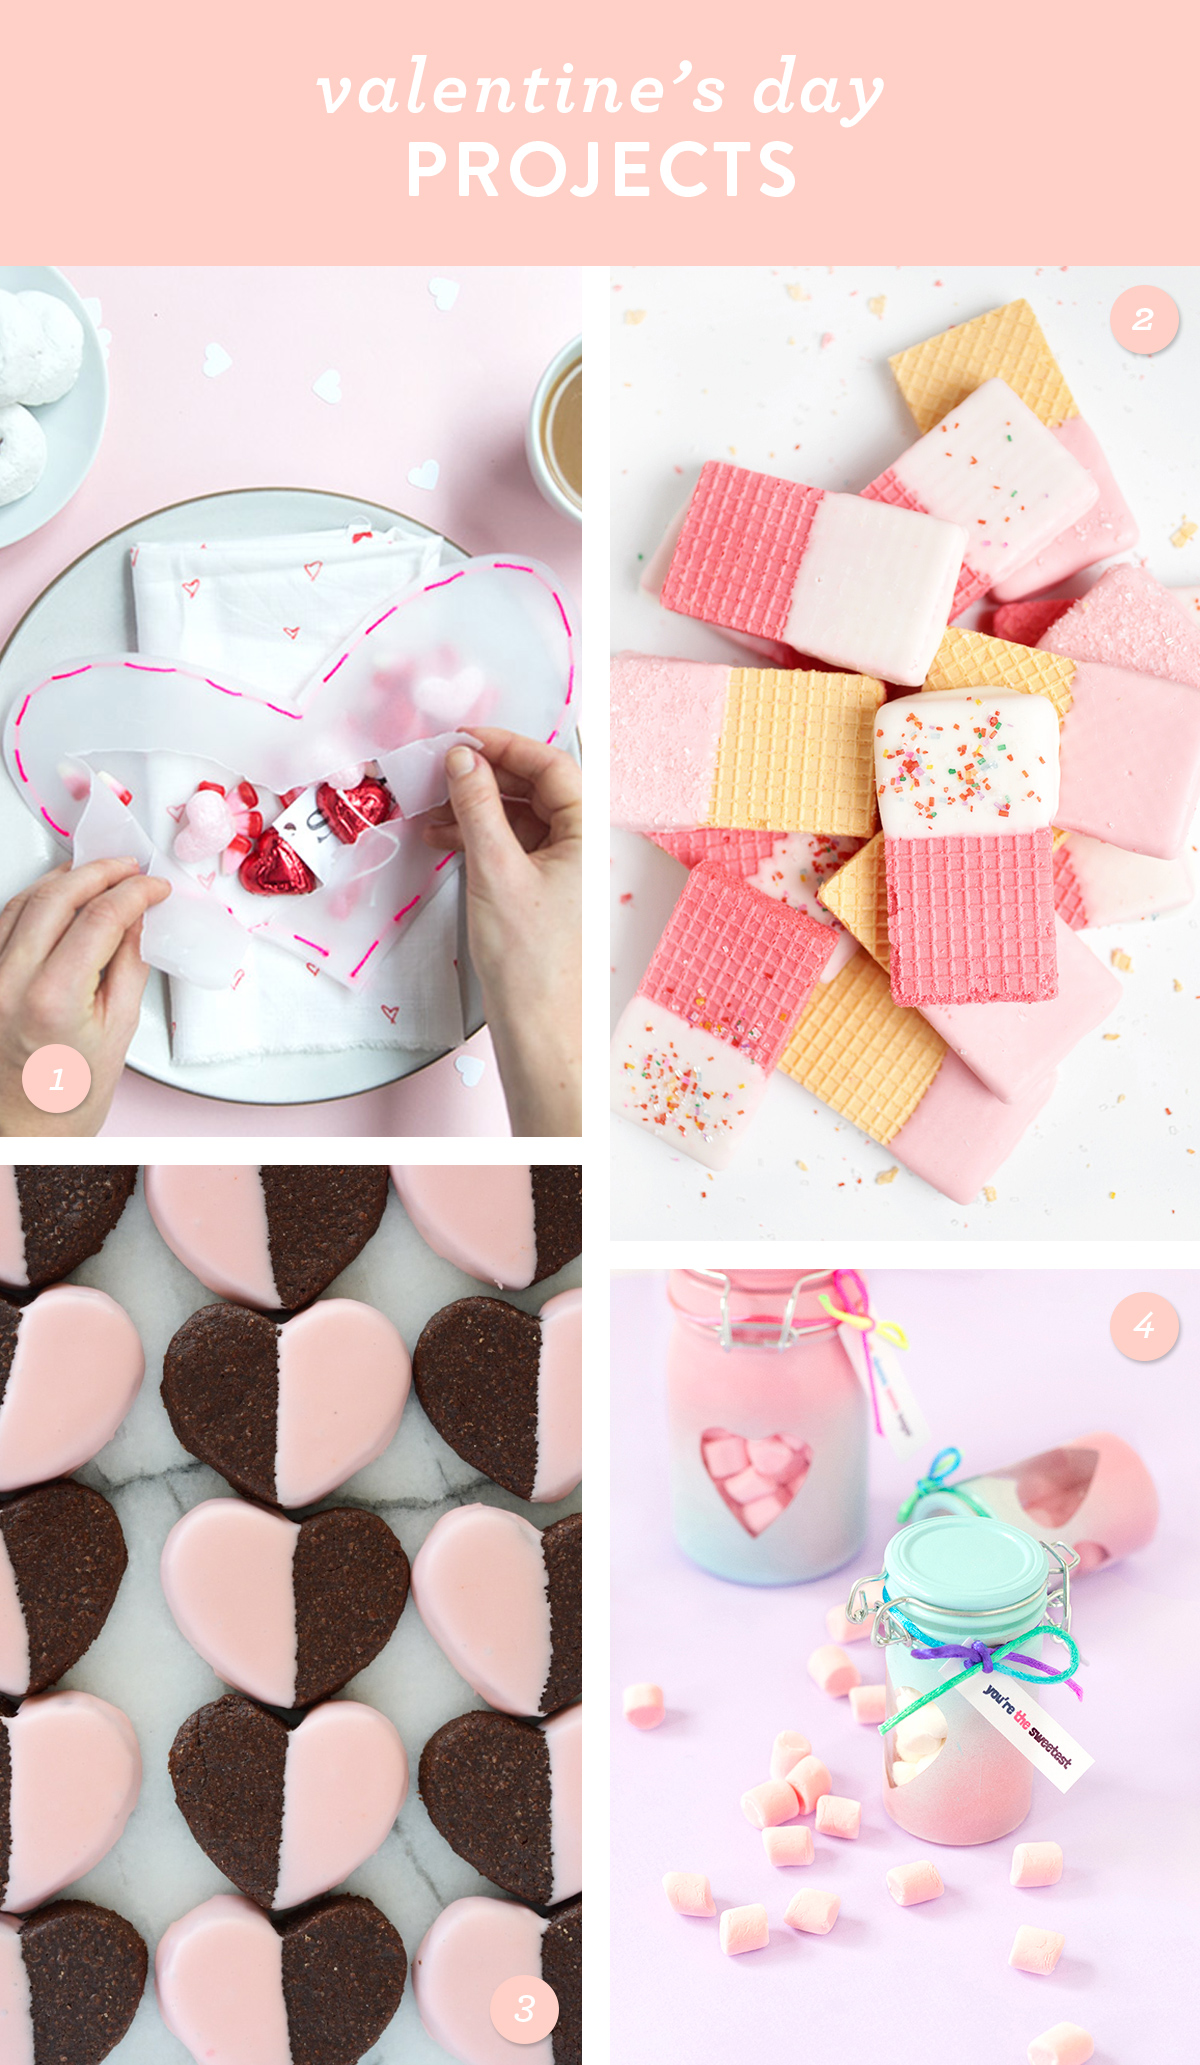 Make one of these sweet treats for your valentine!